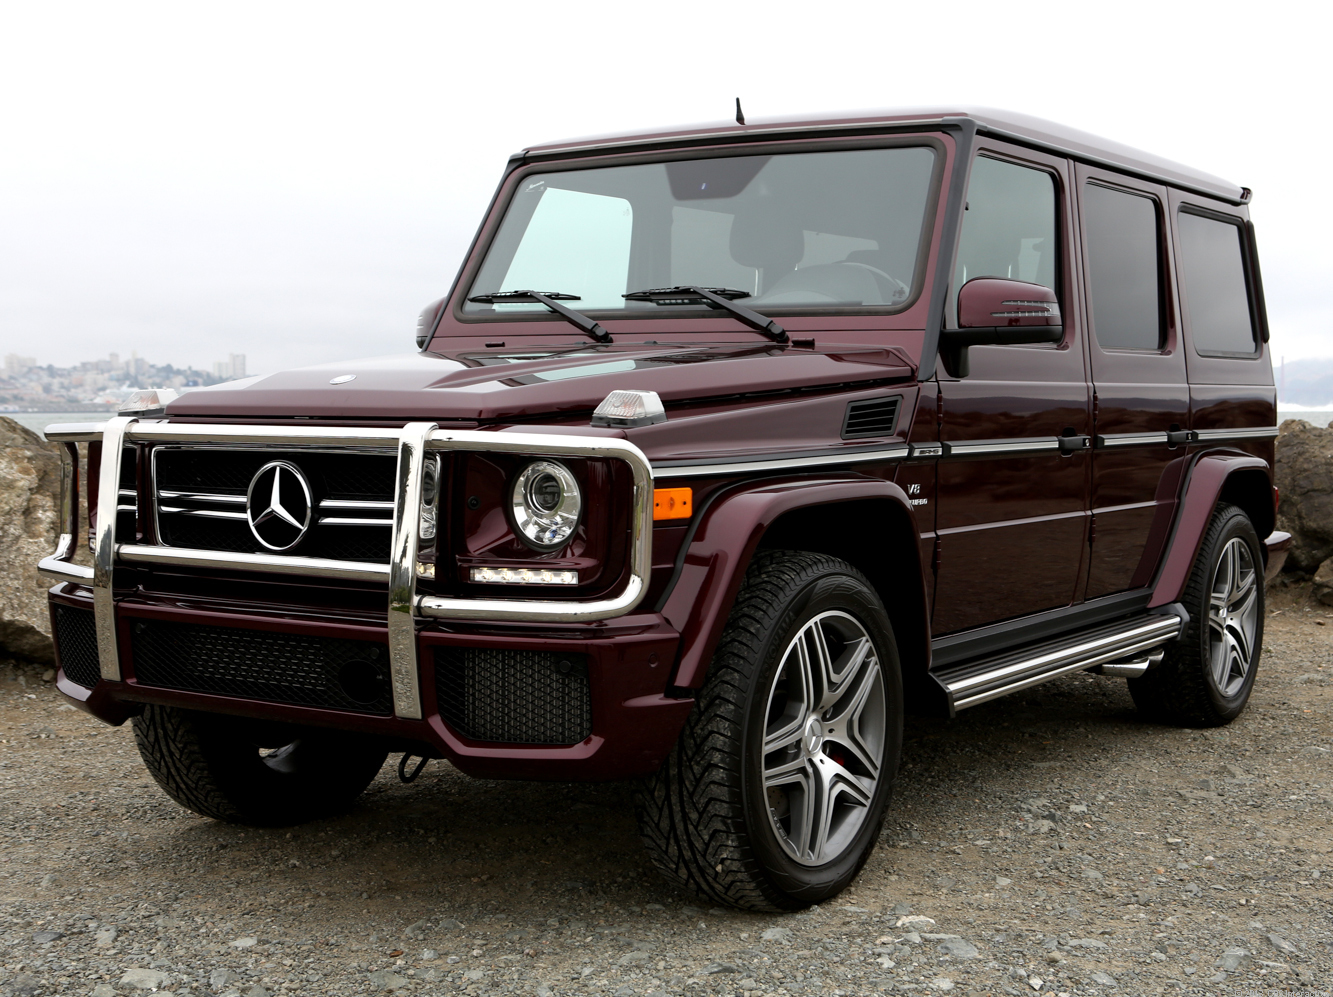 2013 mercedes benz g63 amg review cnet for 2014 mercedes benz truck